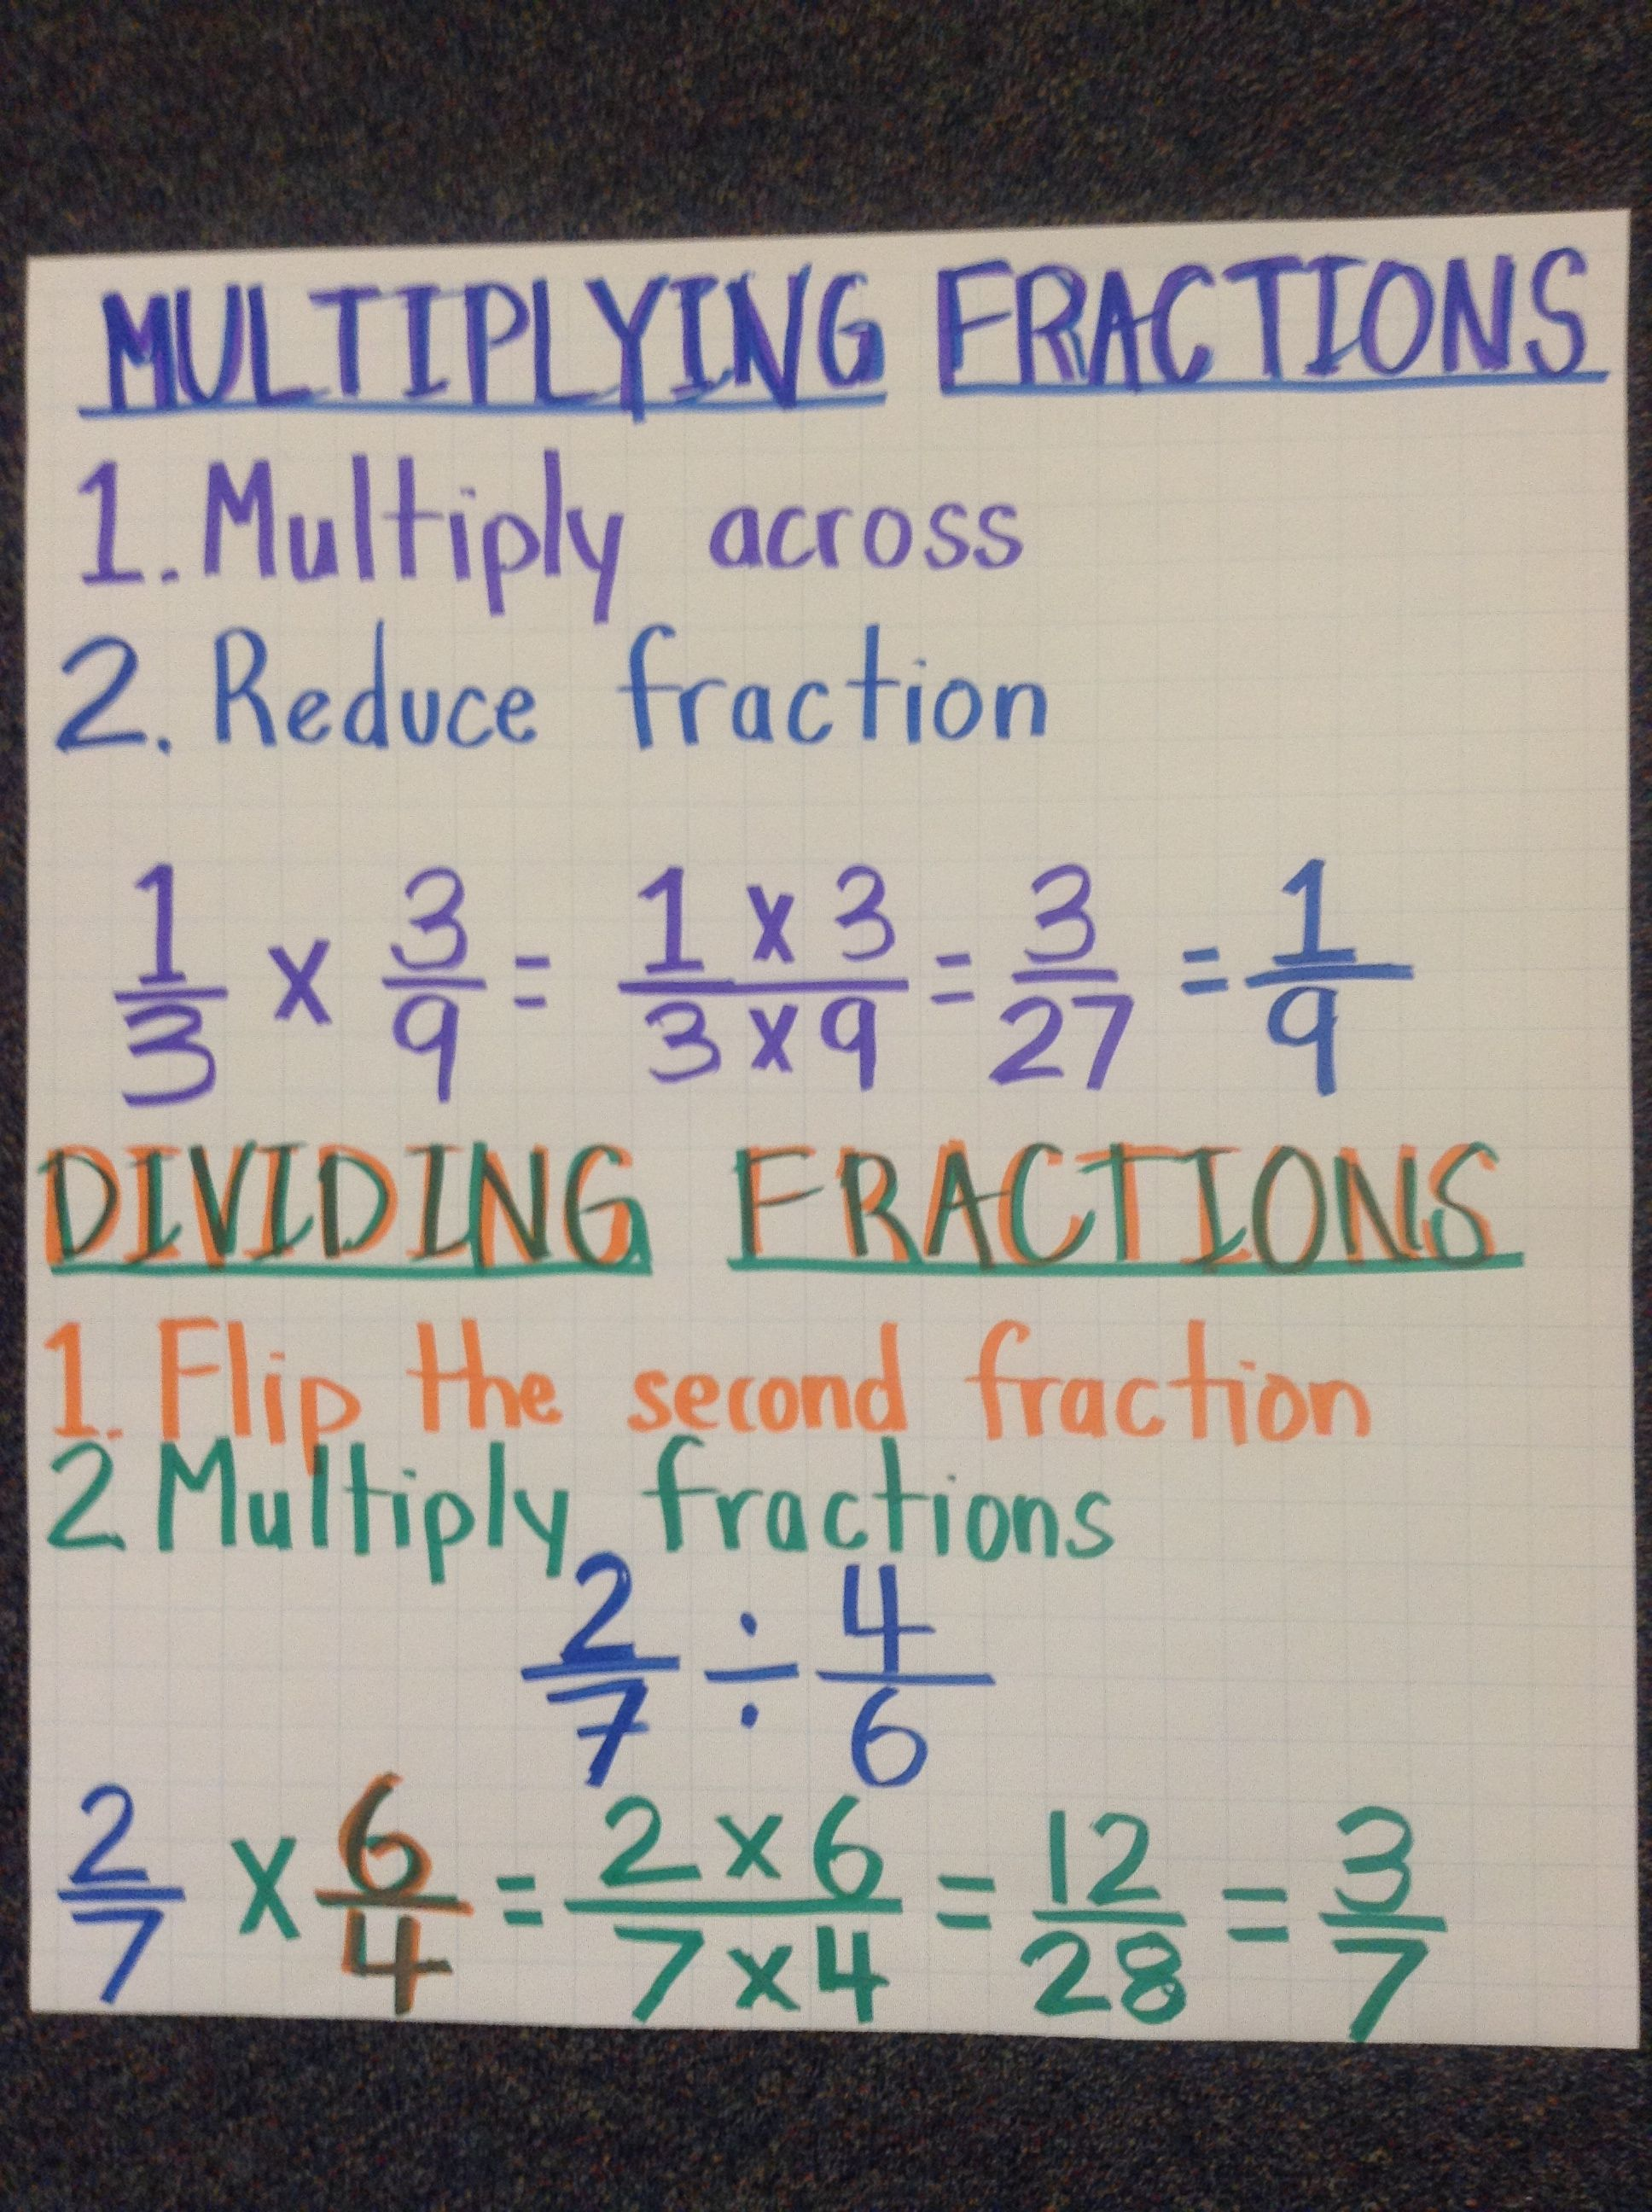 Multiplying Fractions Video 5th Grade